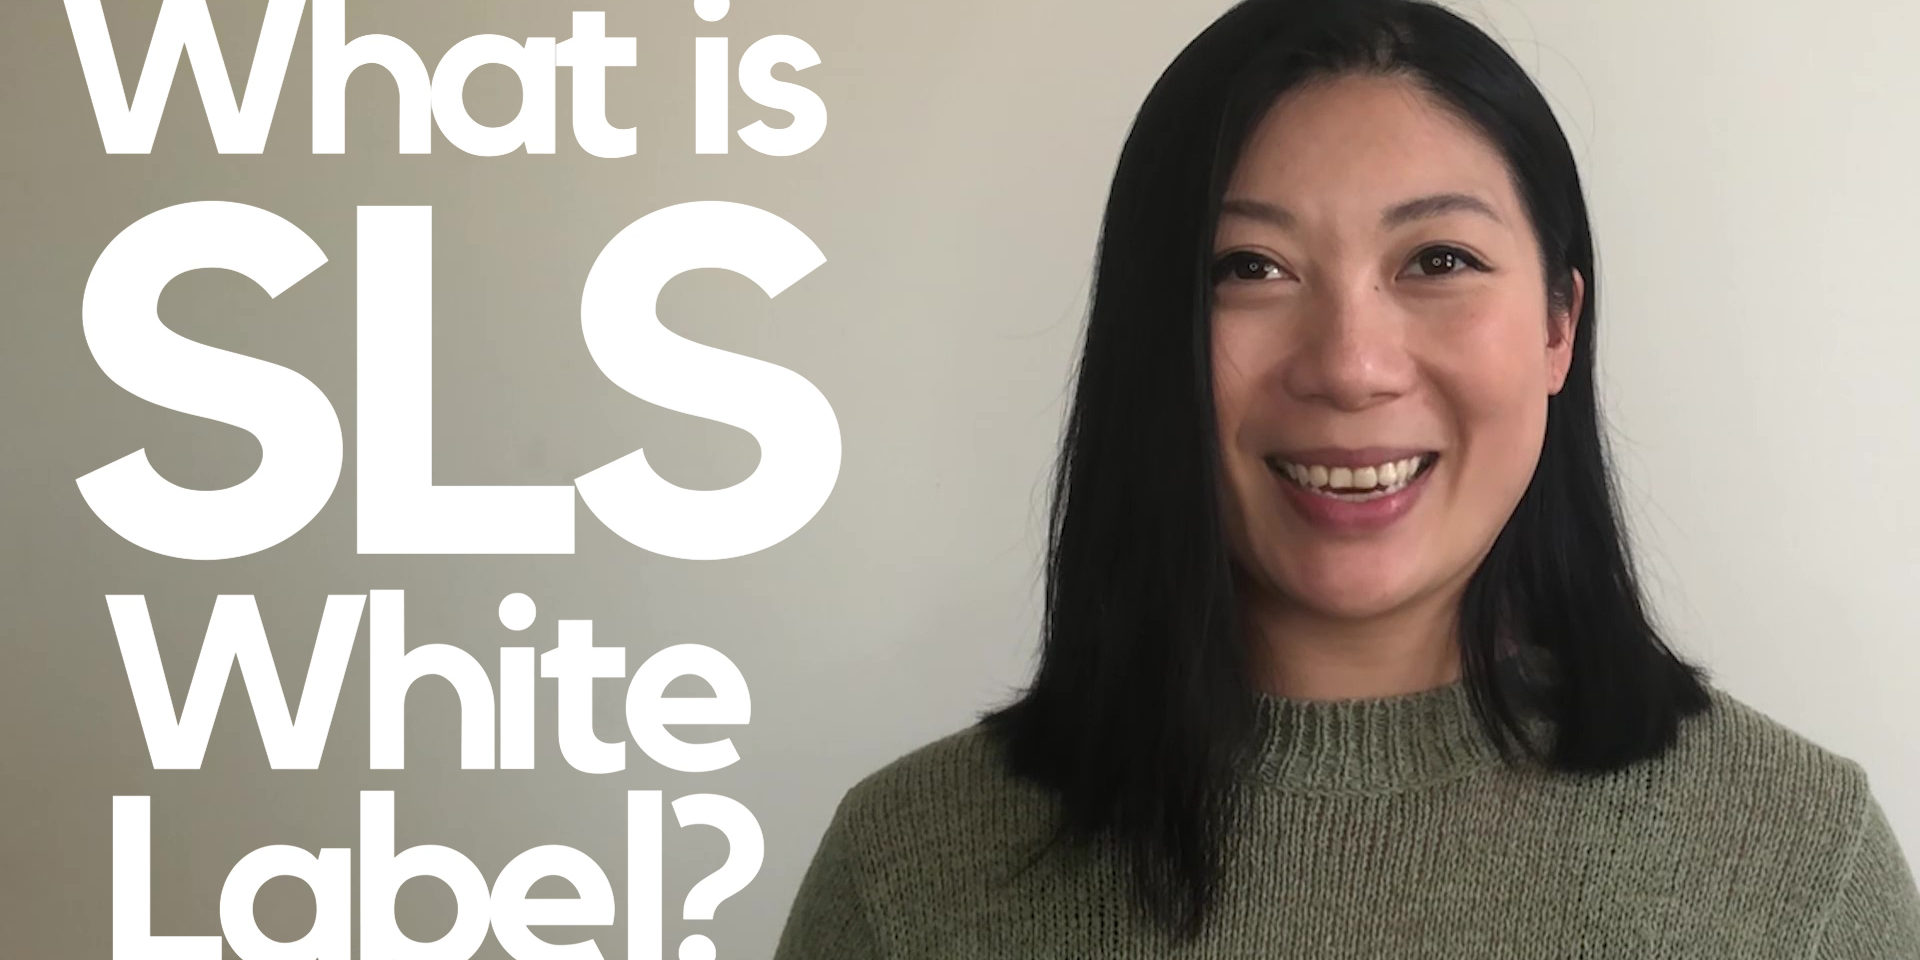 20201120 what is white label_thumbnail